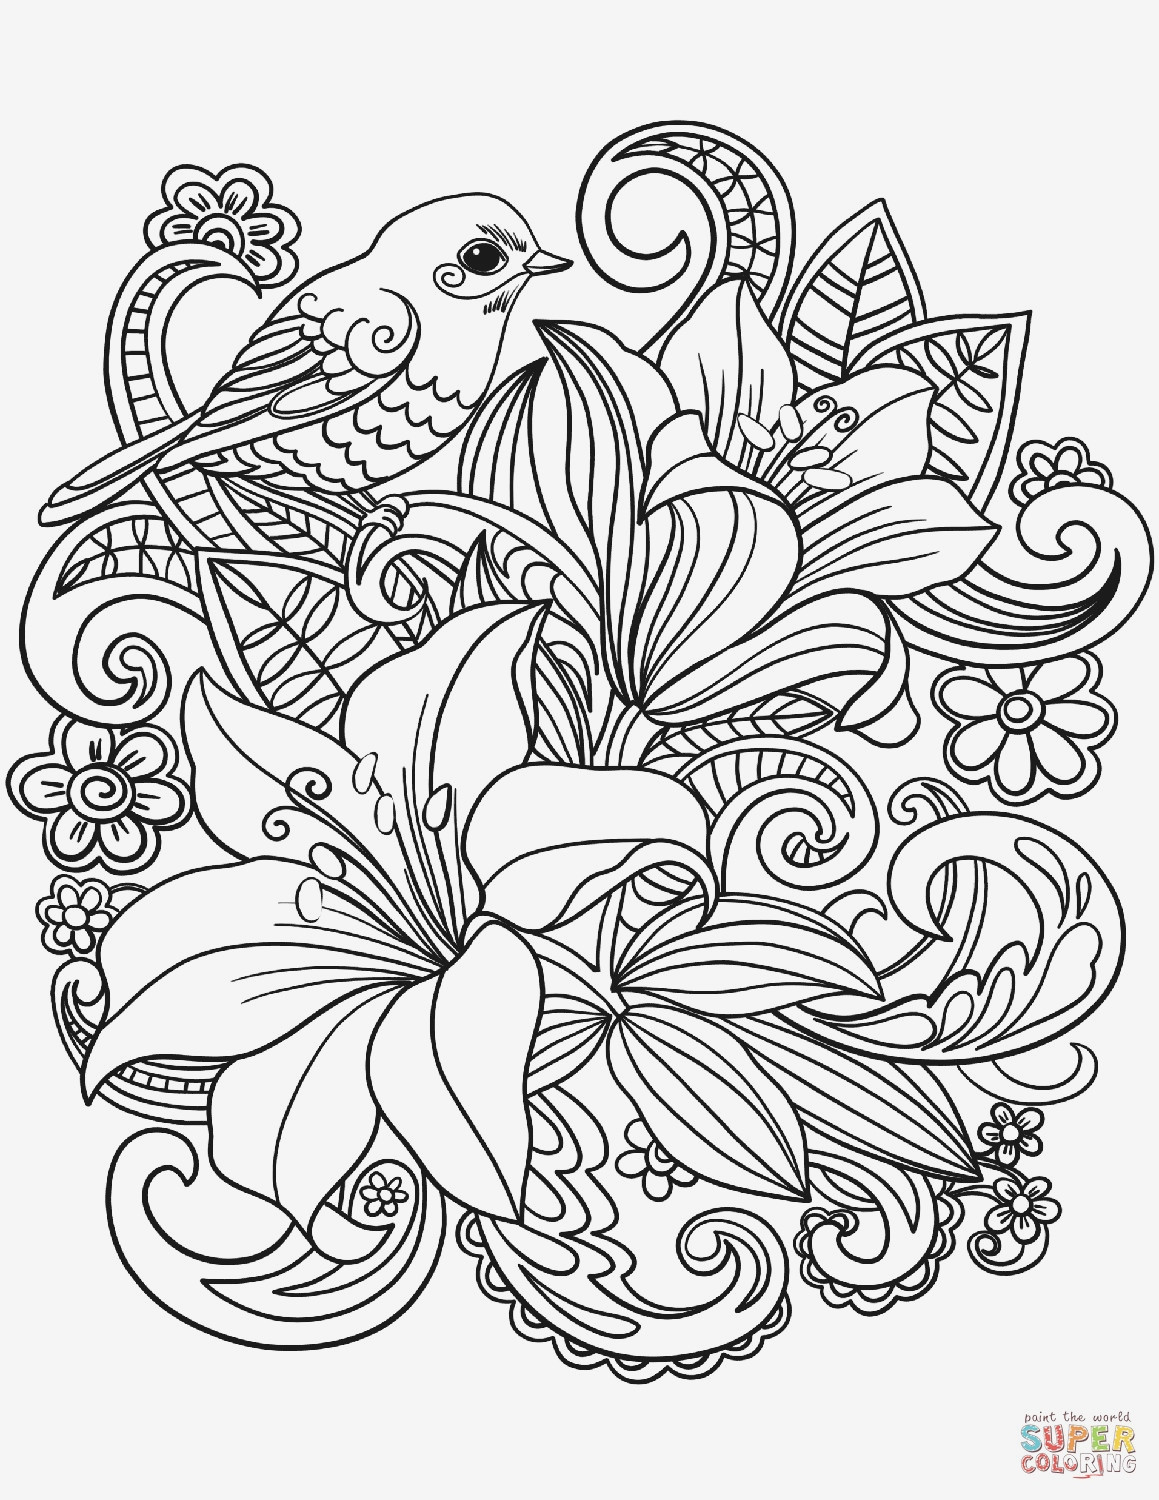 flowers with vase included of free flower coloring pages printable cool vases flower vase coloring with free flower coloring pages printable cool vases flower vase coloring page pages flowers in a top i 0d